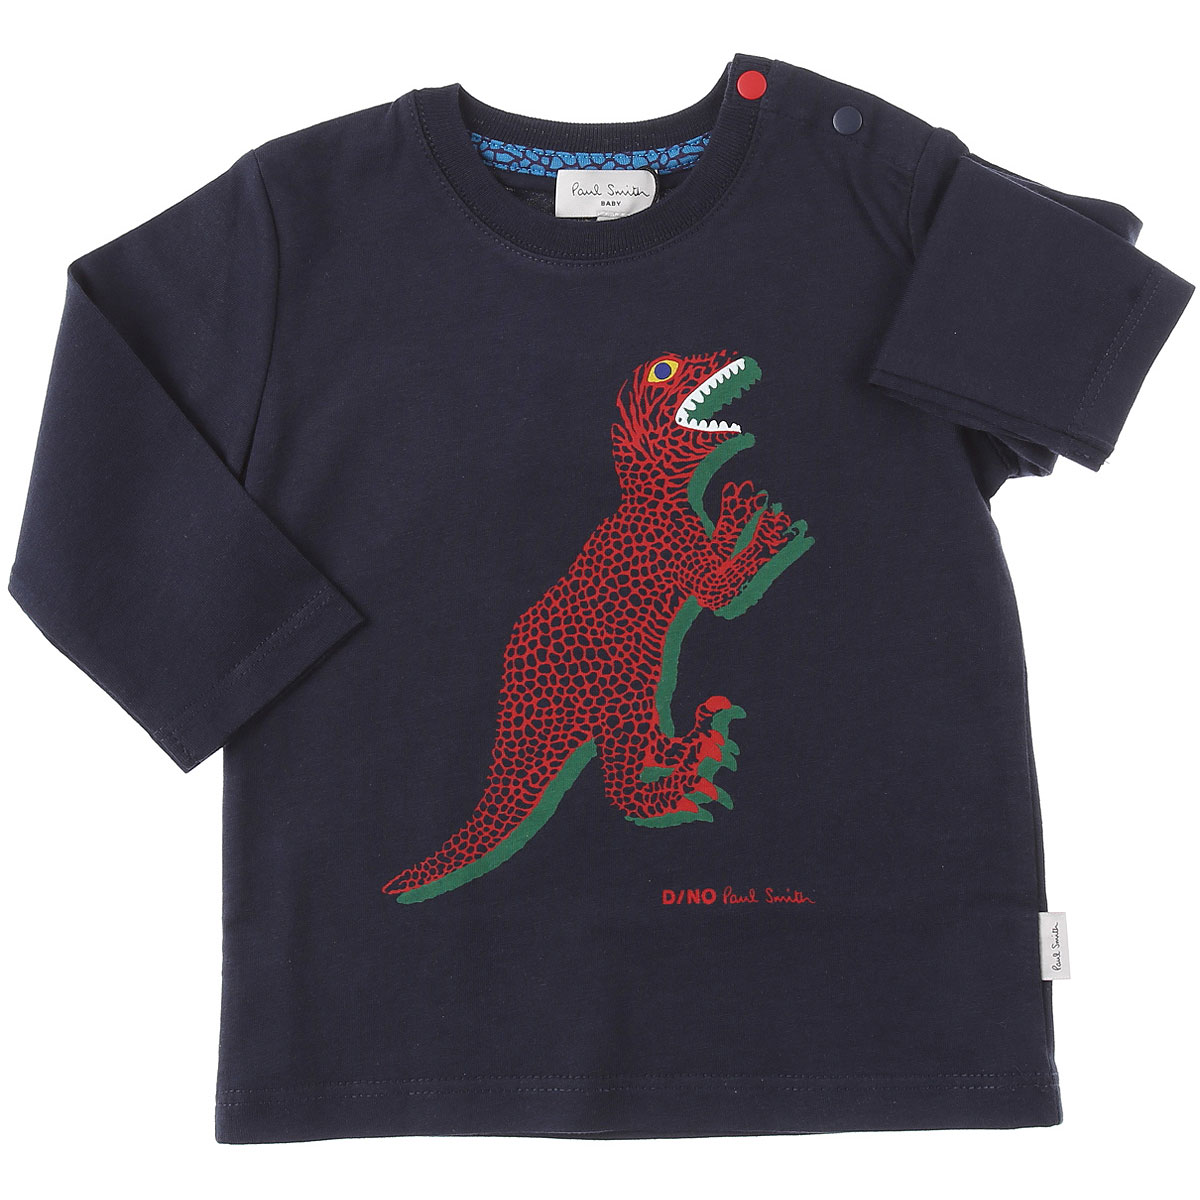 Paul Smith Baby T-Shirt for Boys On Sale, navy, Cotton, 2019, 12 M 18M 2Y 3Y 6M 9M